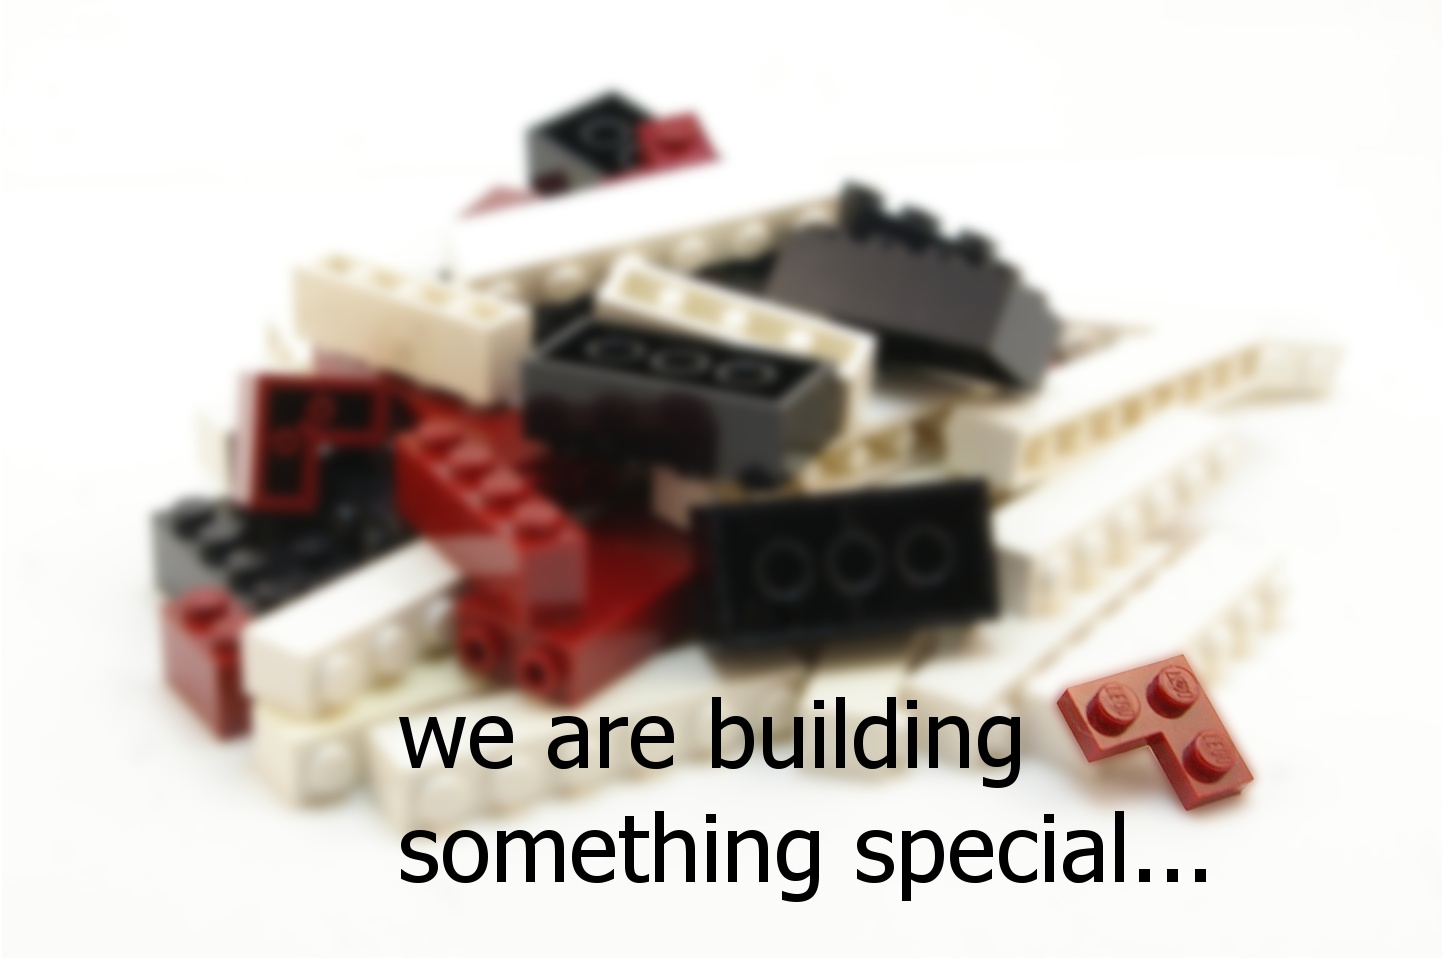 02-march-2011_we_are_building.jpg